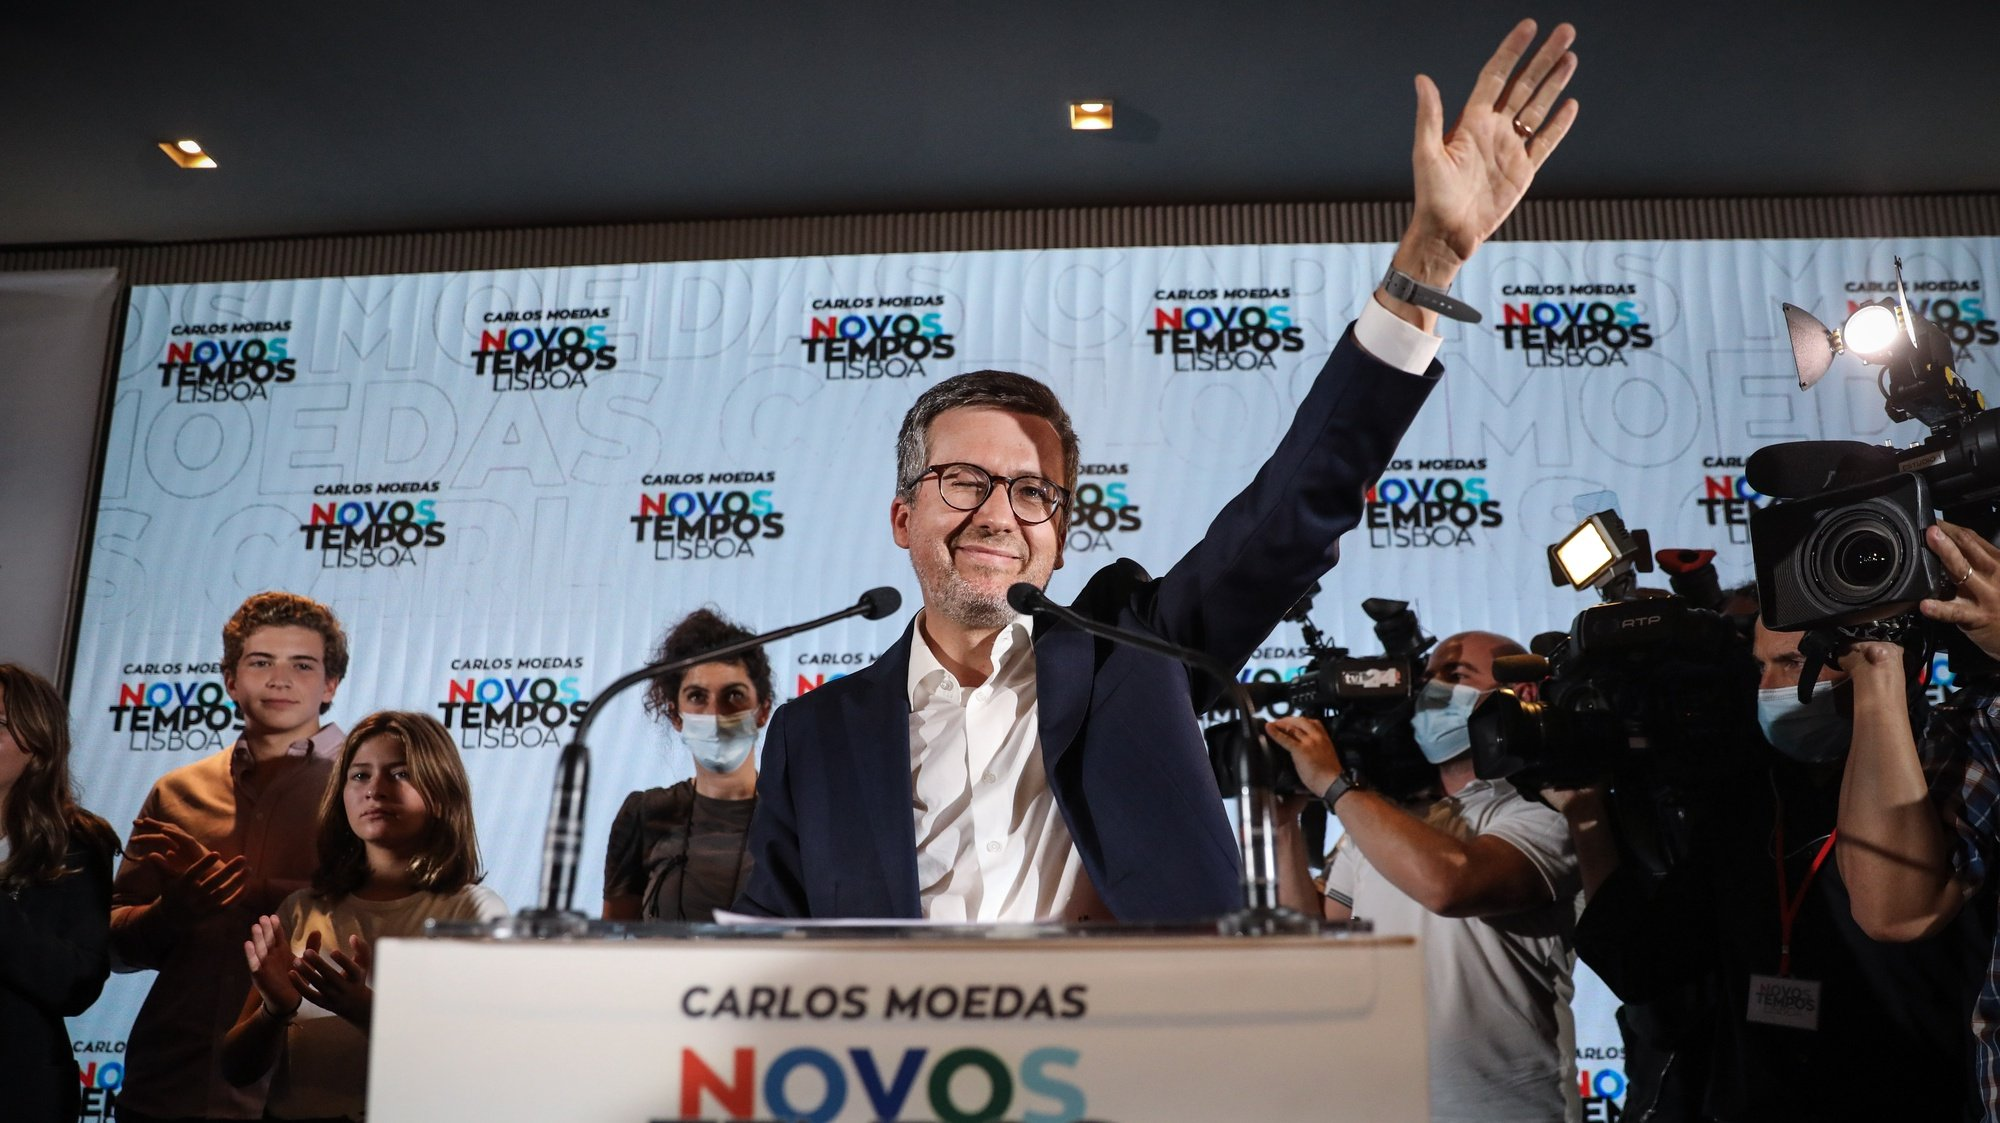 epaselect epa09490752 The candidate of the Coalition 'Novos Tempos Lisboa' (PSD/CDS-PP/PPM/MPT/Alianca) Carlos Moedas (C) addresses the media after being elected as Mayor of Lisbon, in Lisbon, Portugal, 27 September 2021.  EPA/RODRIGO ANTUNES